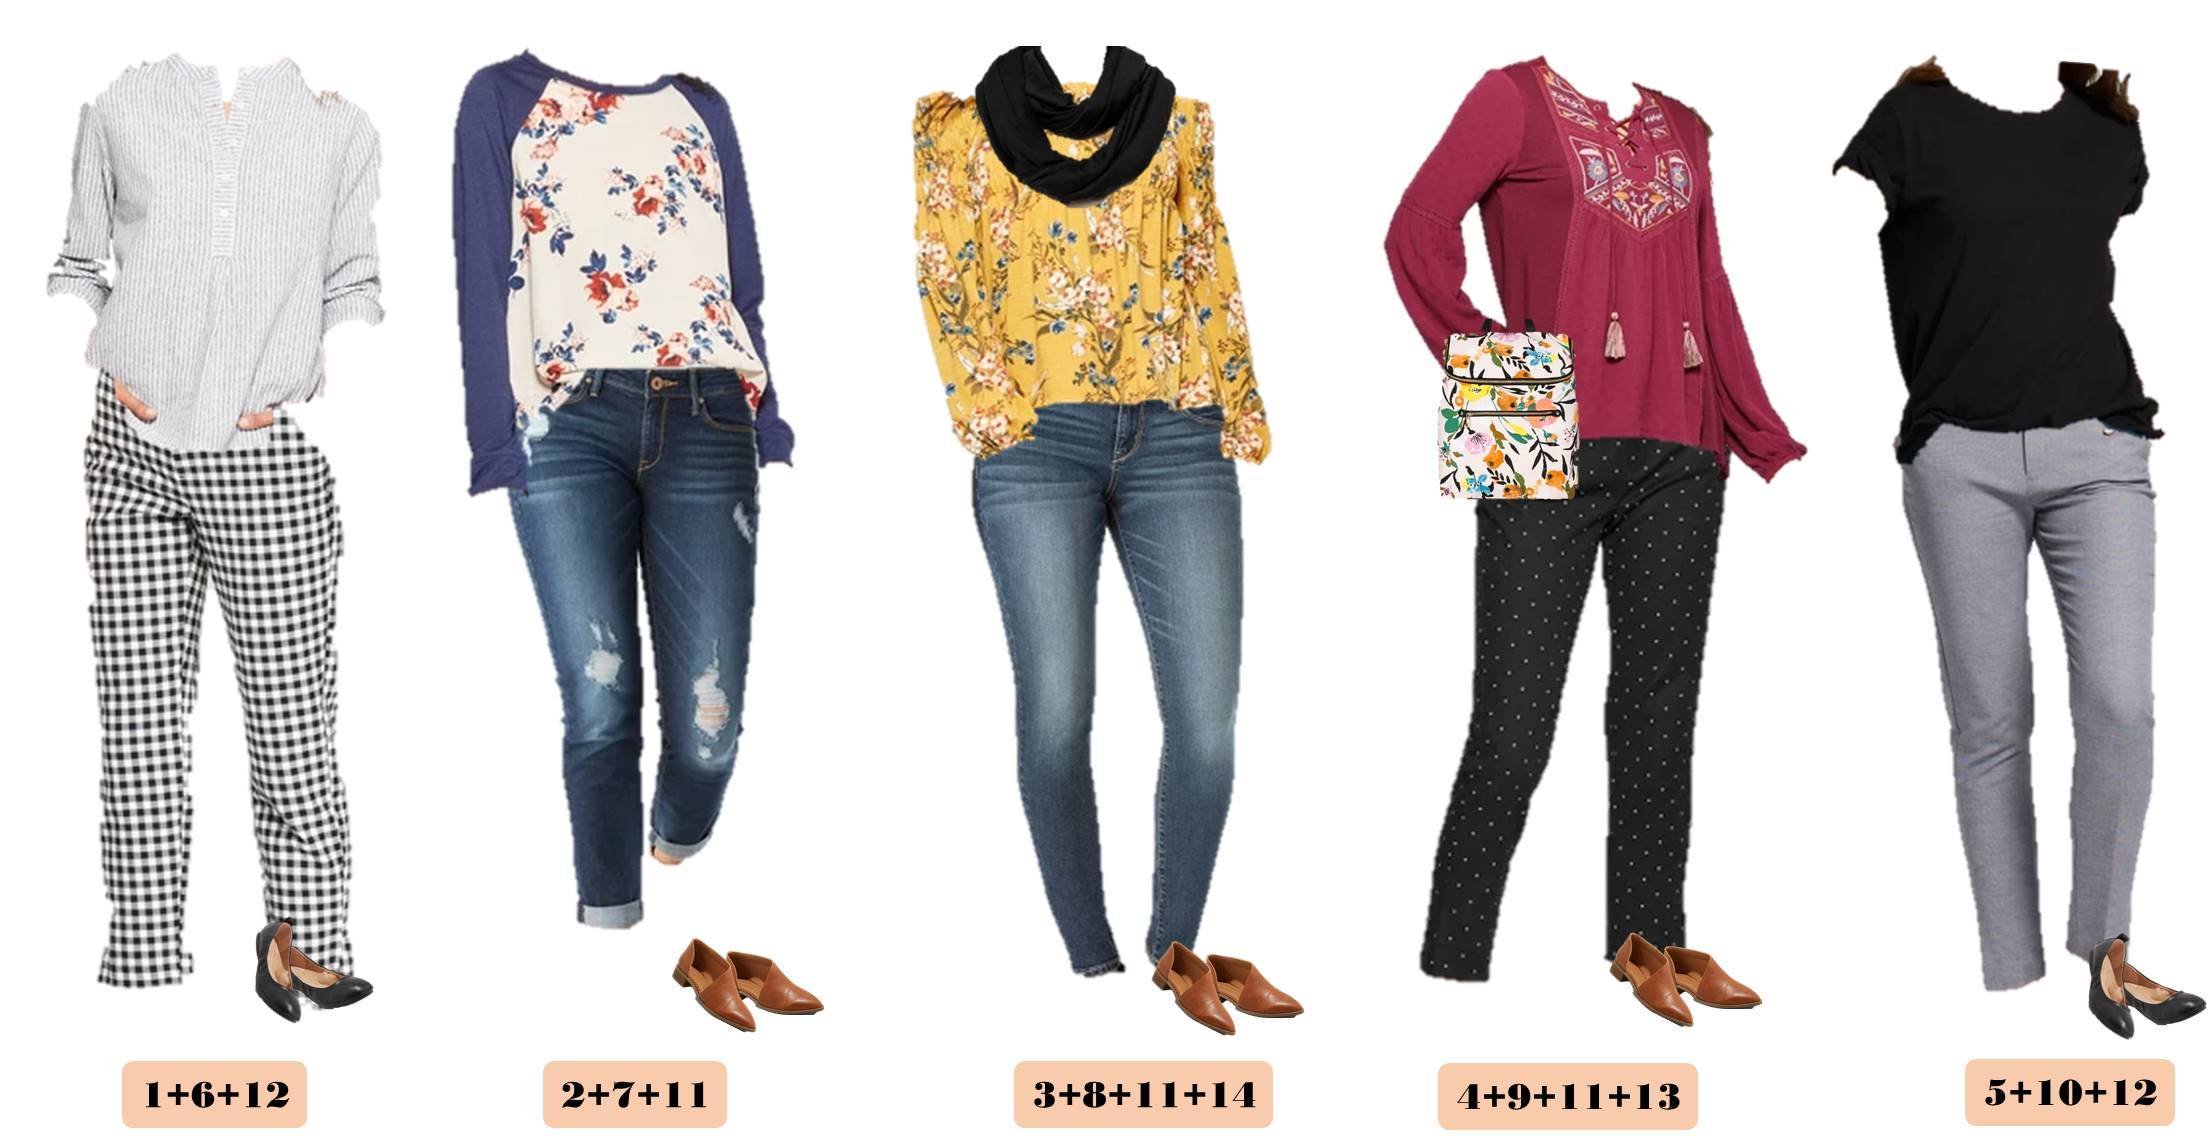 early spring floral tops, checked pants, jeans